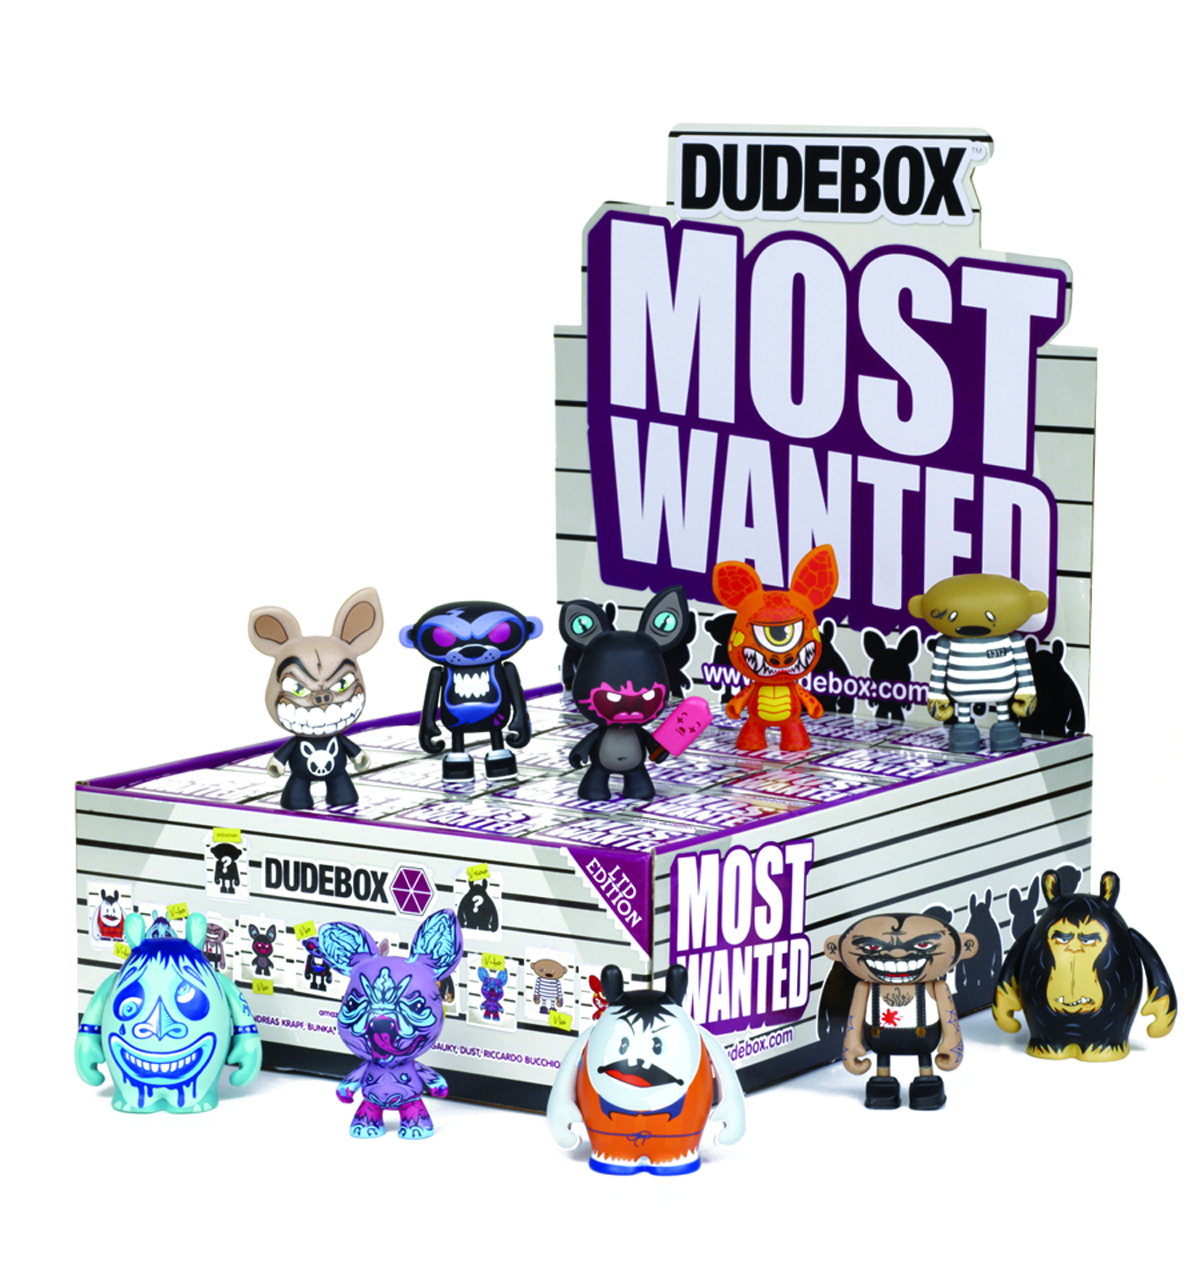 DUDEBOX MOST WANTED MINI FIG 20PC BMB DS